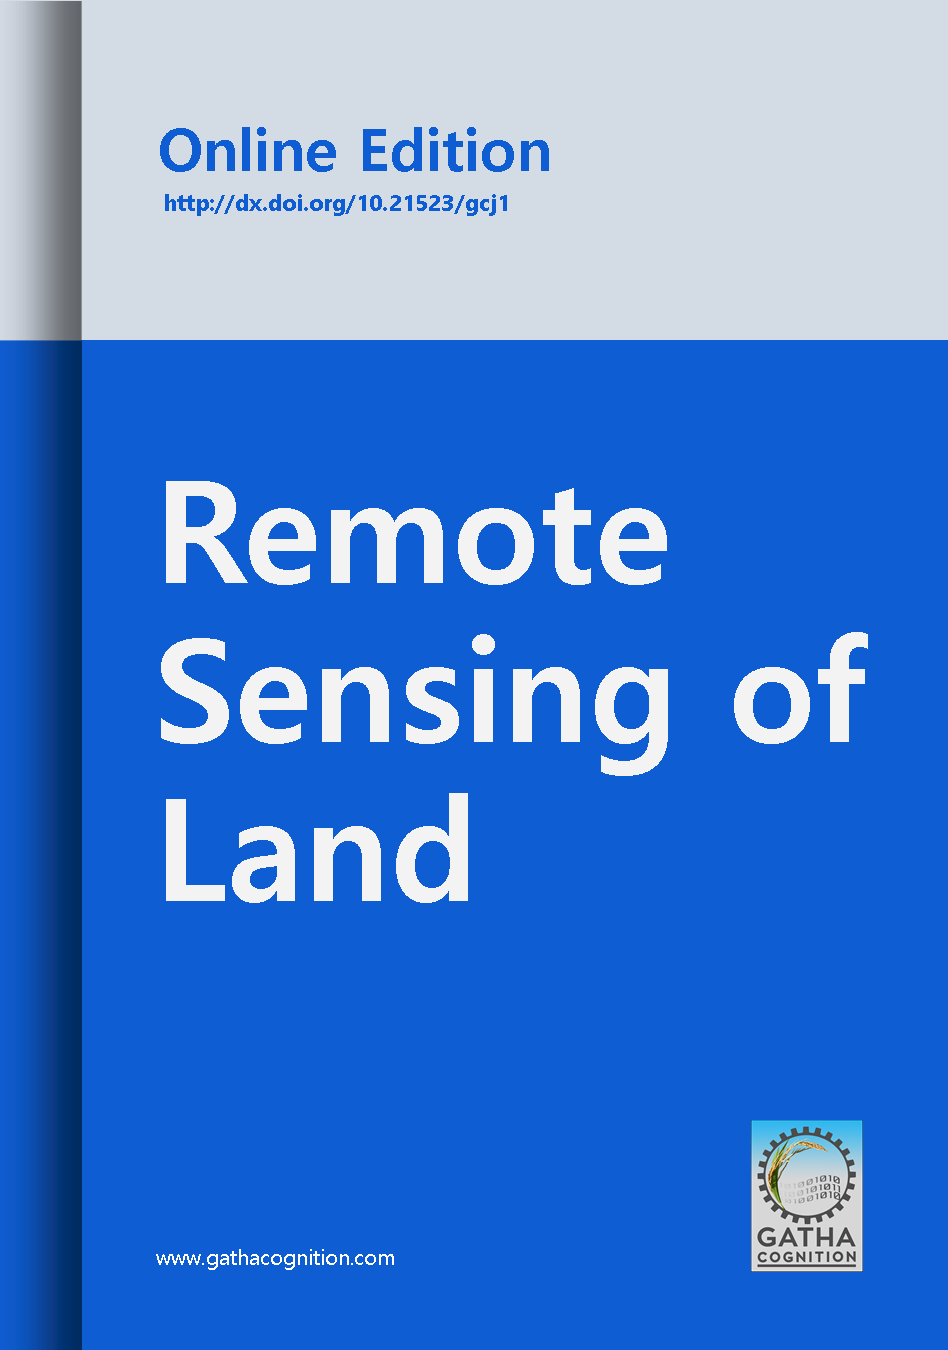 Remote Sensing of Land